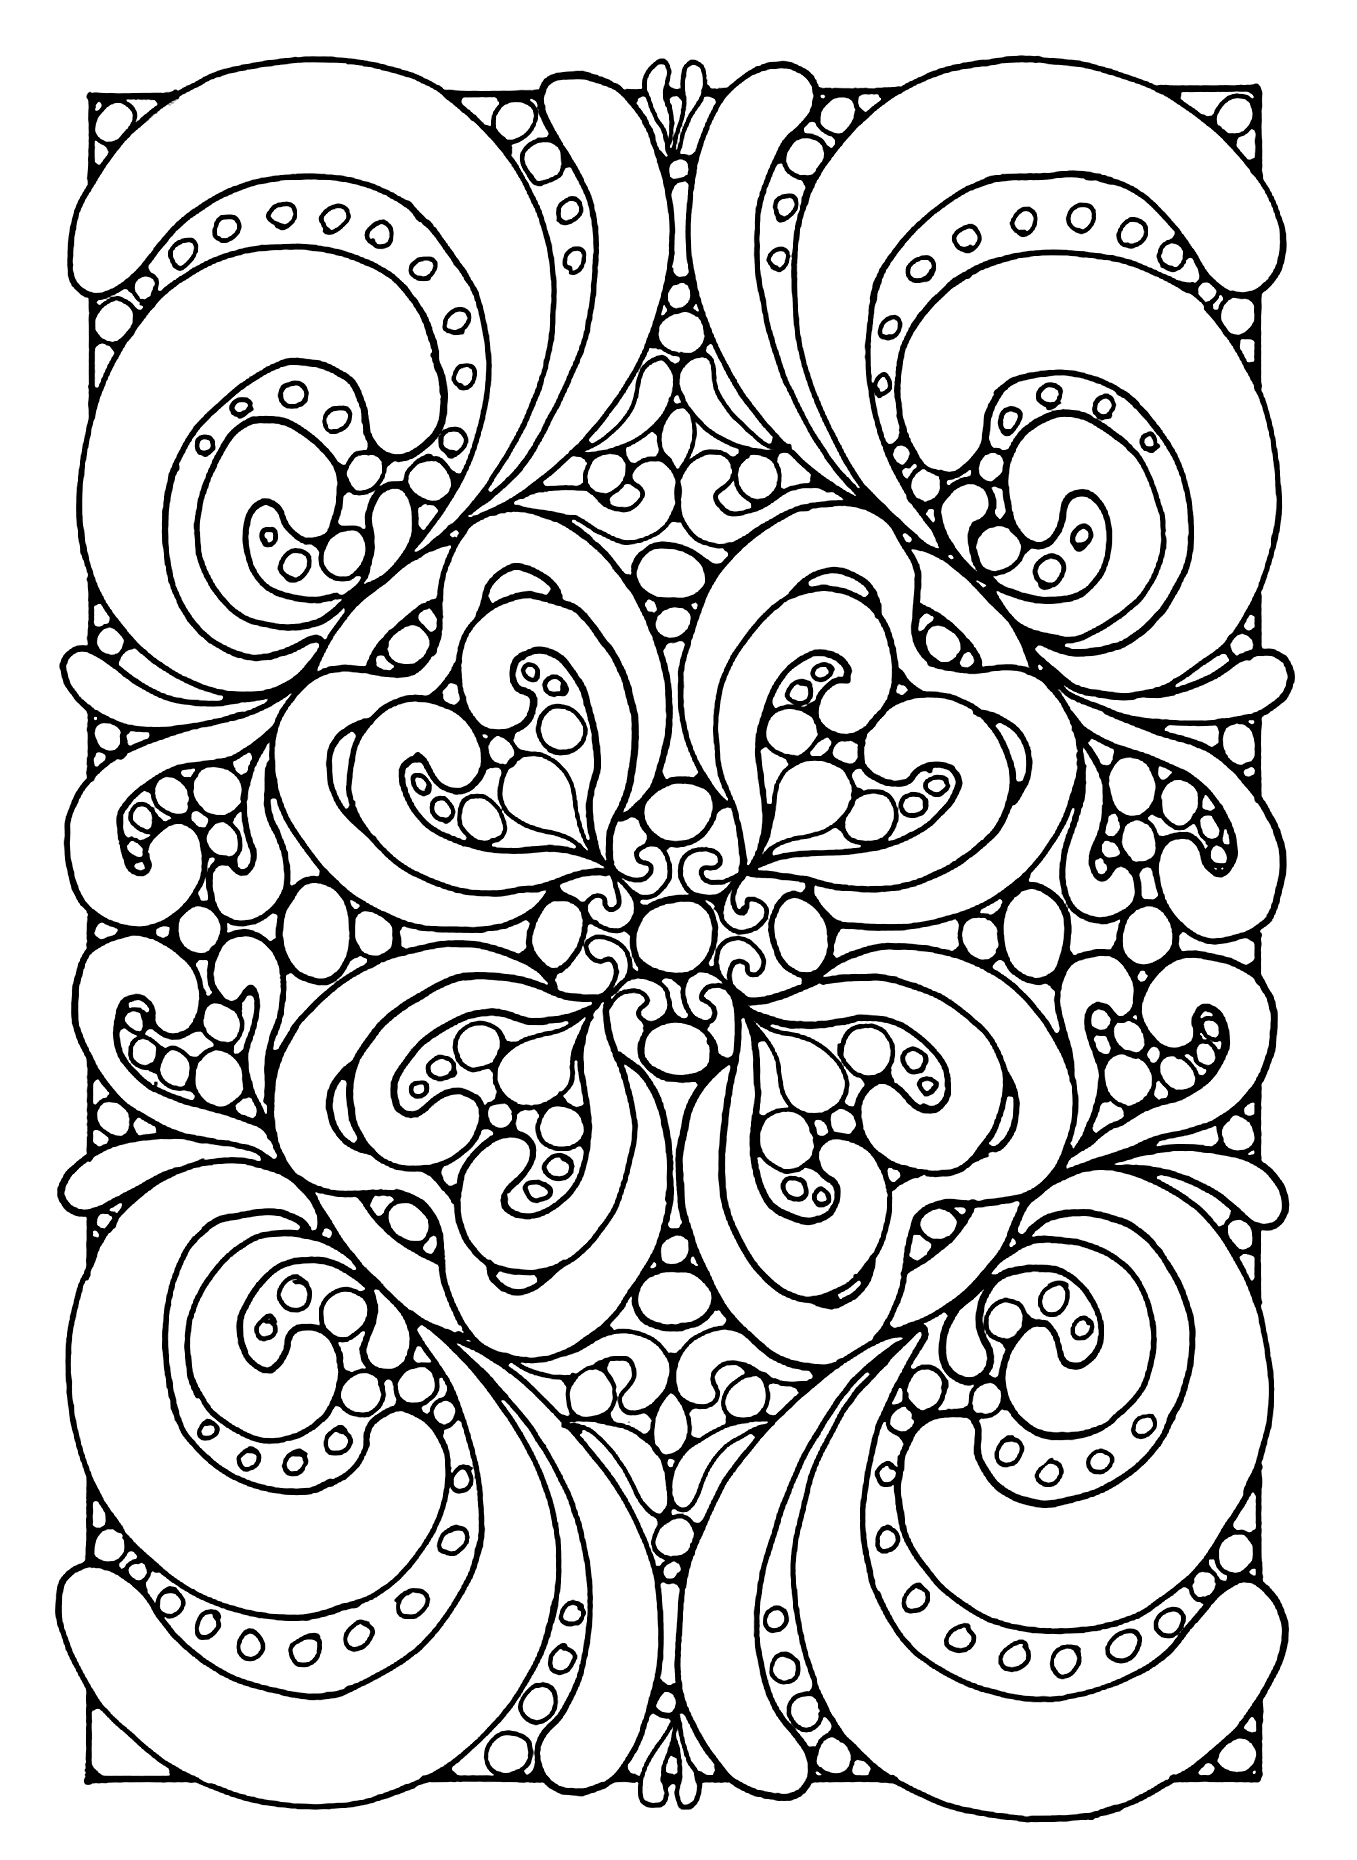 Abstract zen Anti stress Adult Coloring Pages Page 2